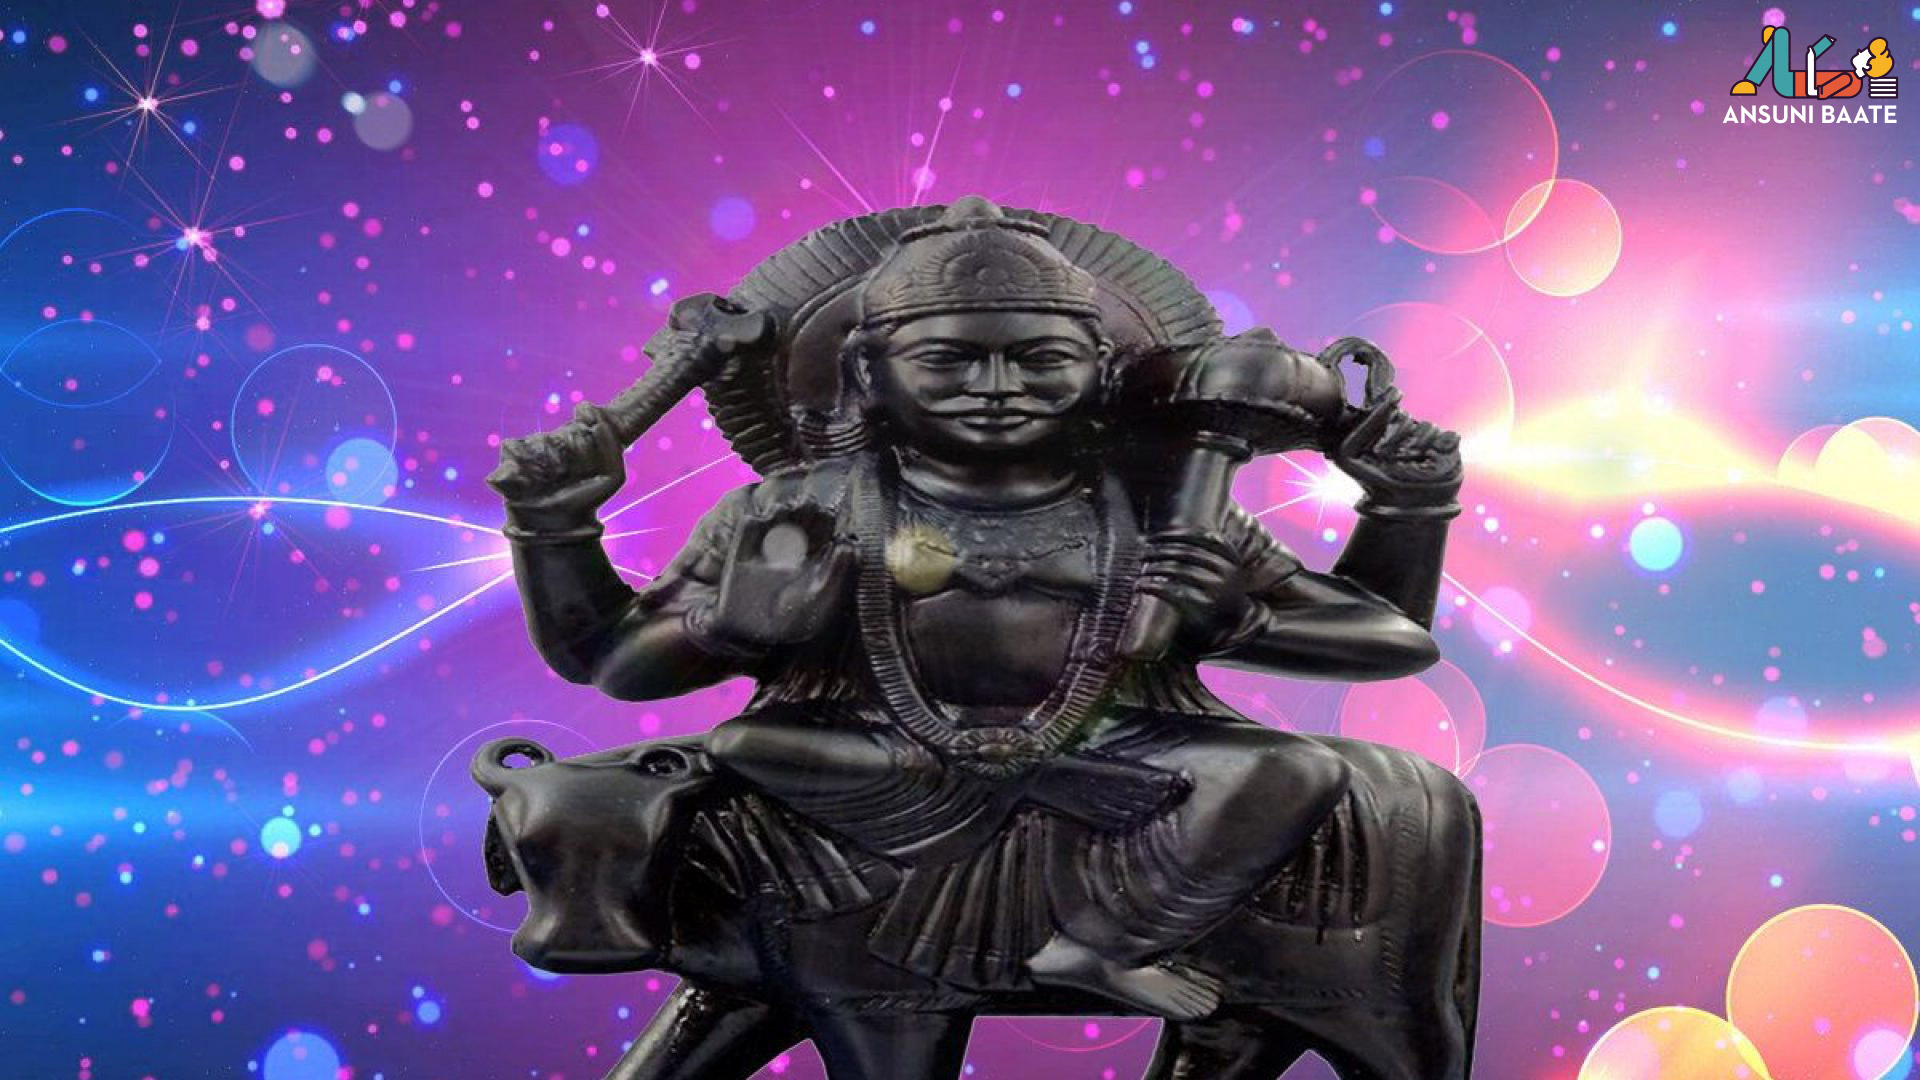 Shani Dev images & full Hd photo Download, Shani Dev Ji Wallpaper Images Gallery Downlod For Mobile, Shani Dev Wallpaper Downlod For Desktop, God Shani Dev images For Facebook ,Shani Dev images download,  God Shani Dev drawing images ,Shani Dev bhagwan photos gallery beautiful pictures & pics,Shani Dev hd images